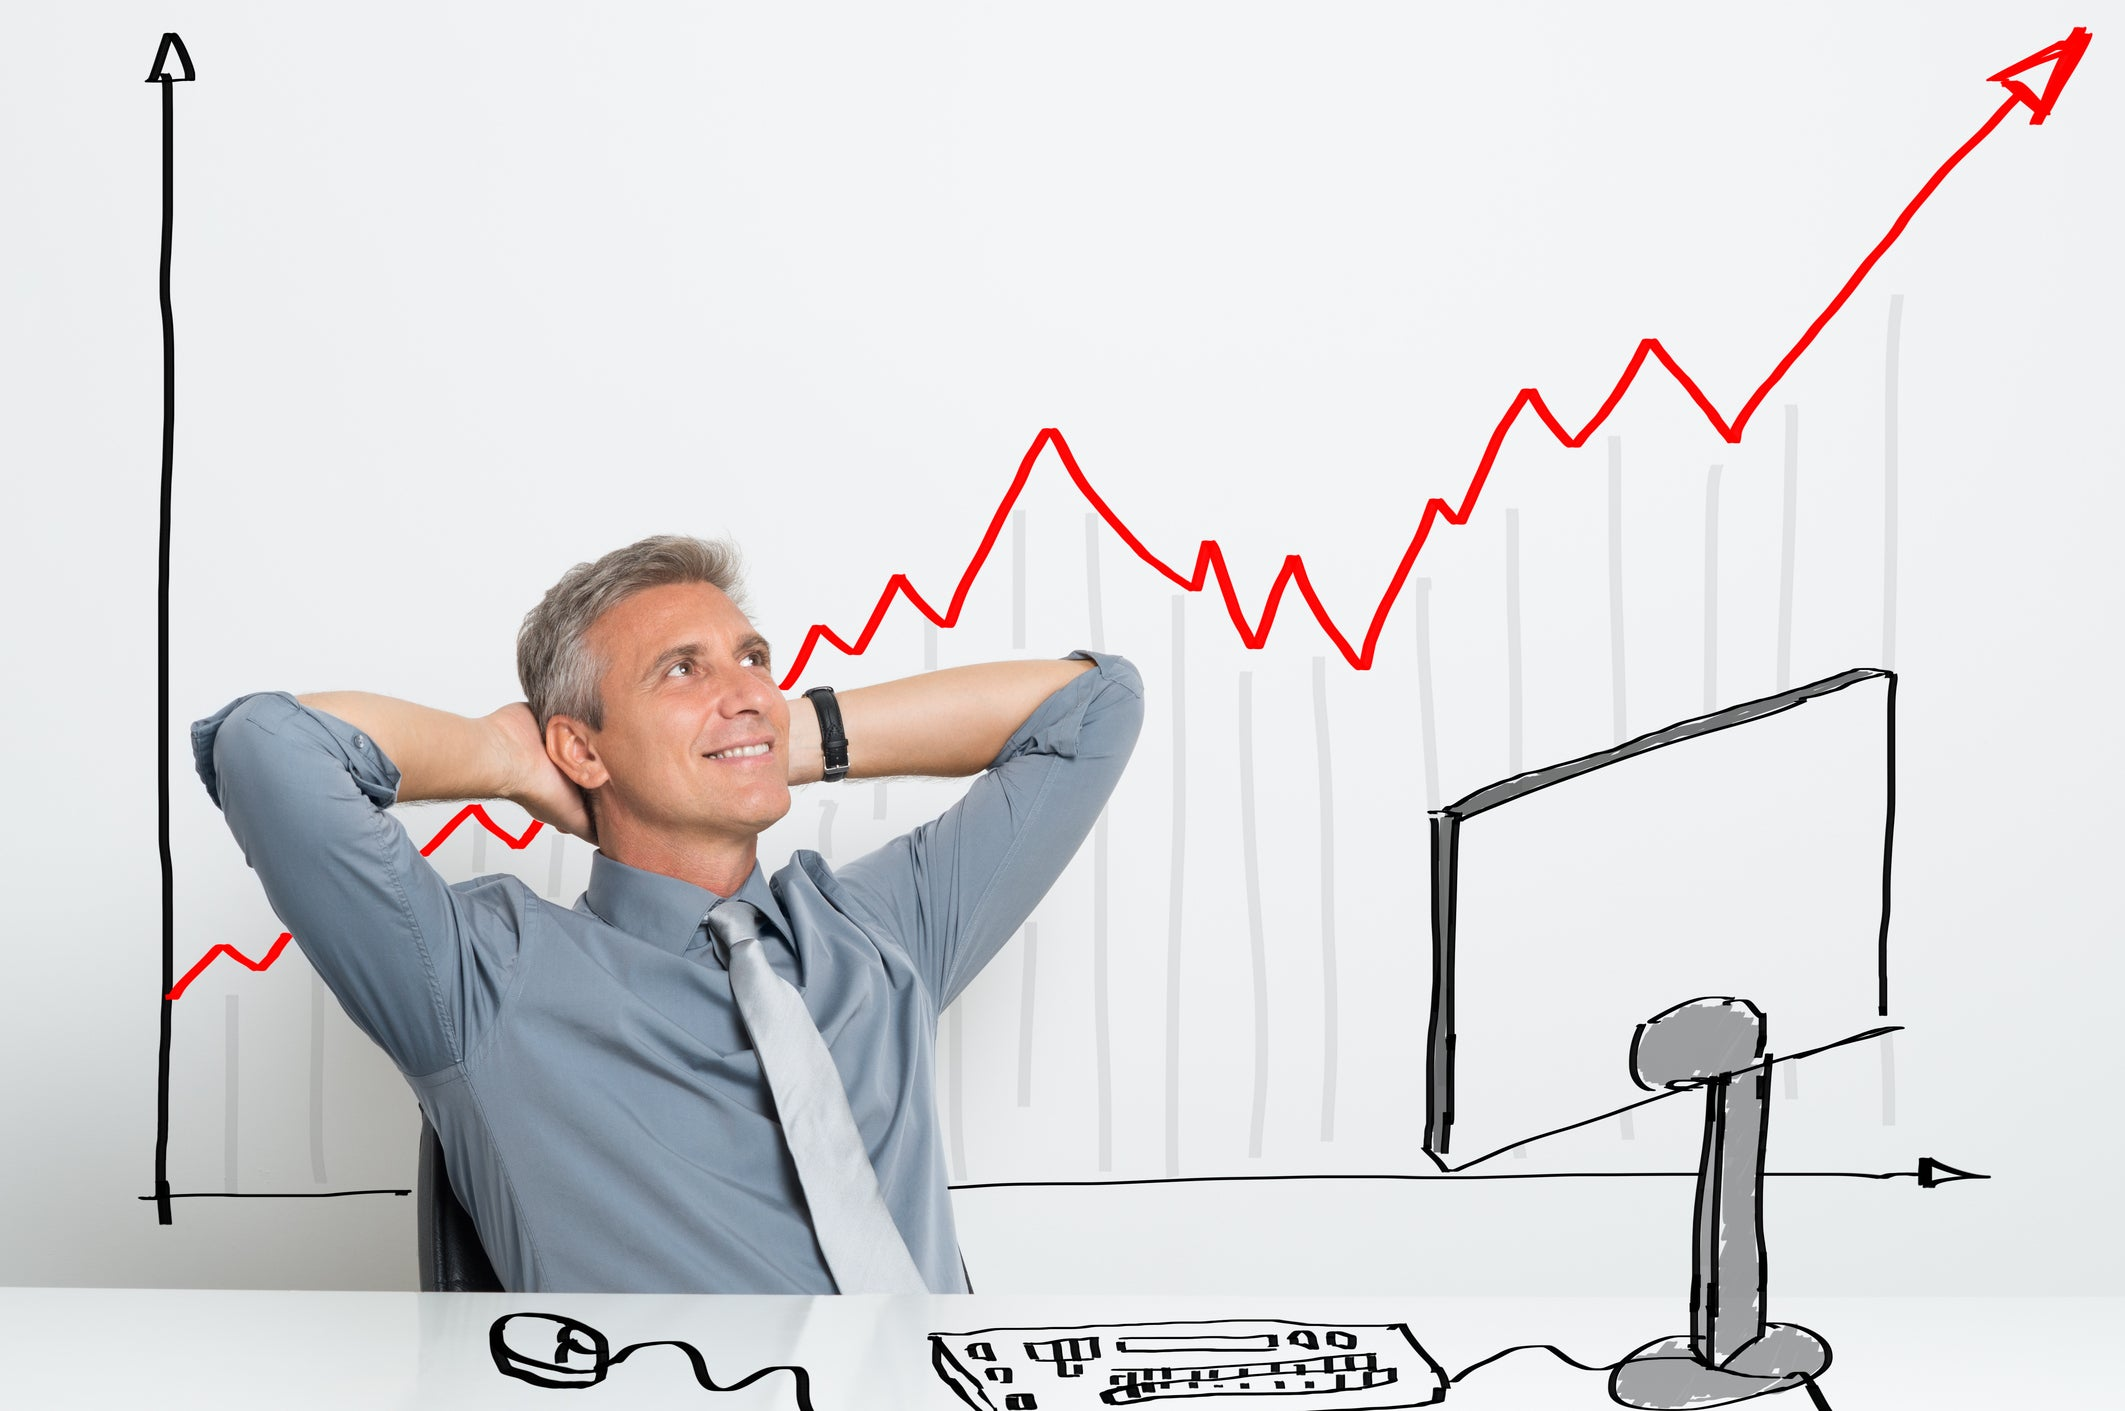 3 High-Growth Stocks That Could Soar | The Motley Fool